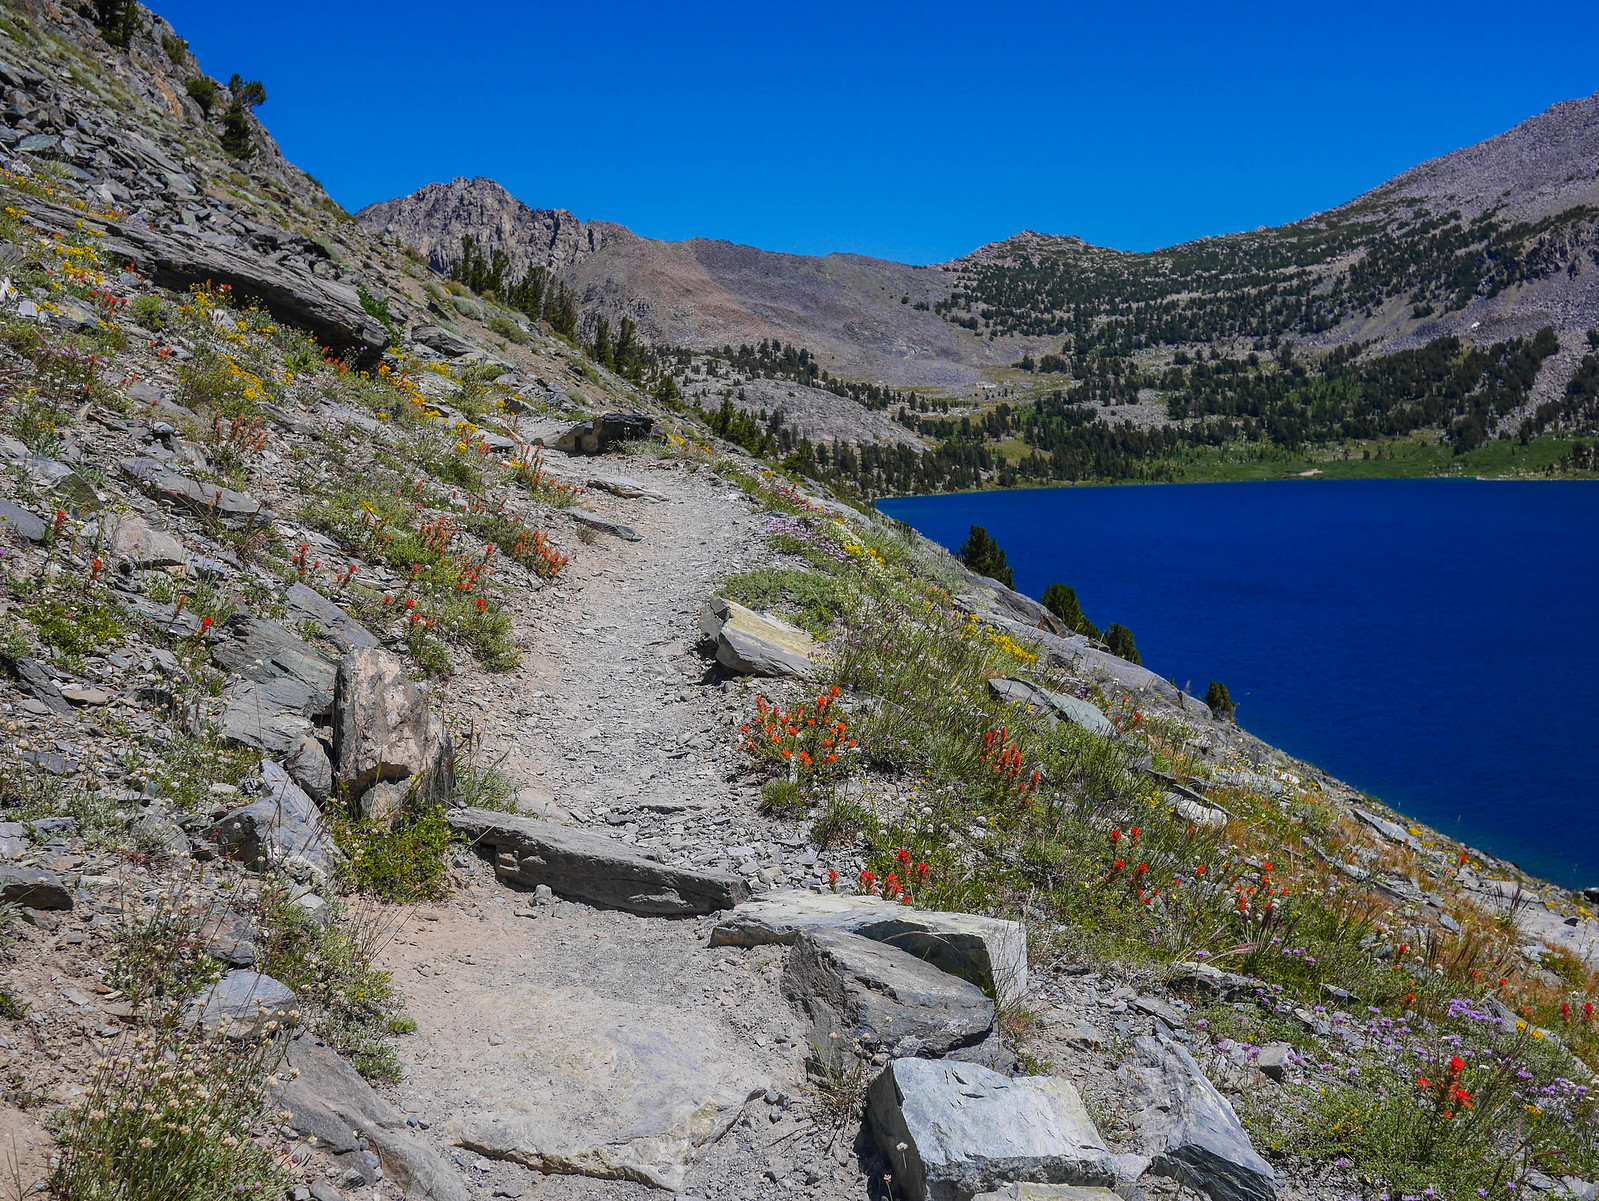 Gorgeous wildflower show along the trail above Duck Lake towards Duck Pass